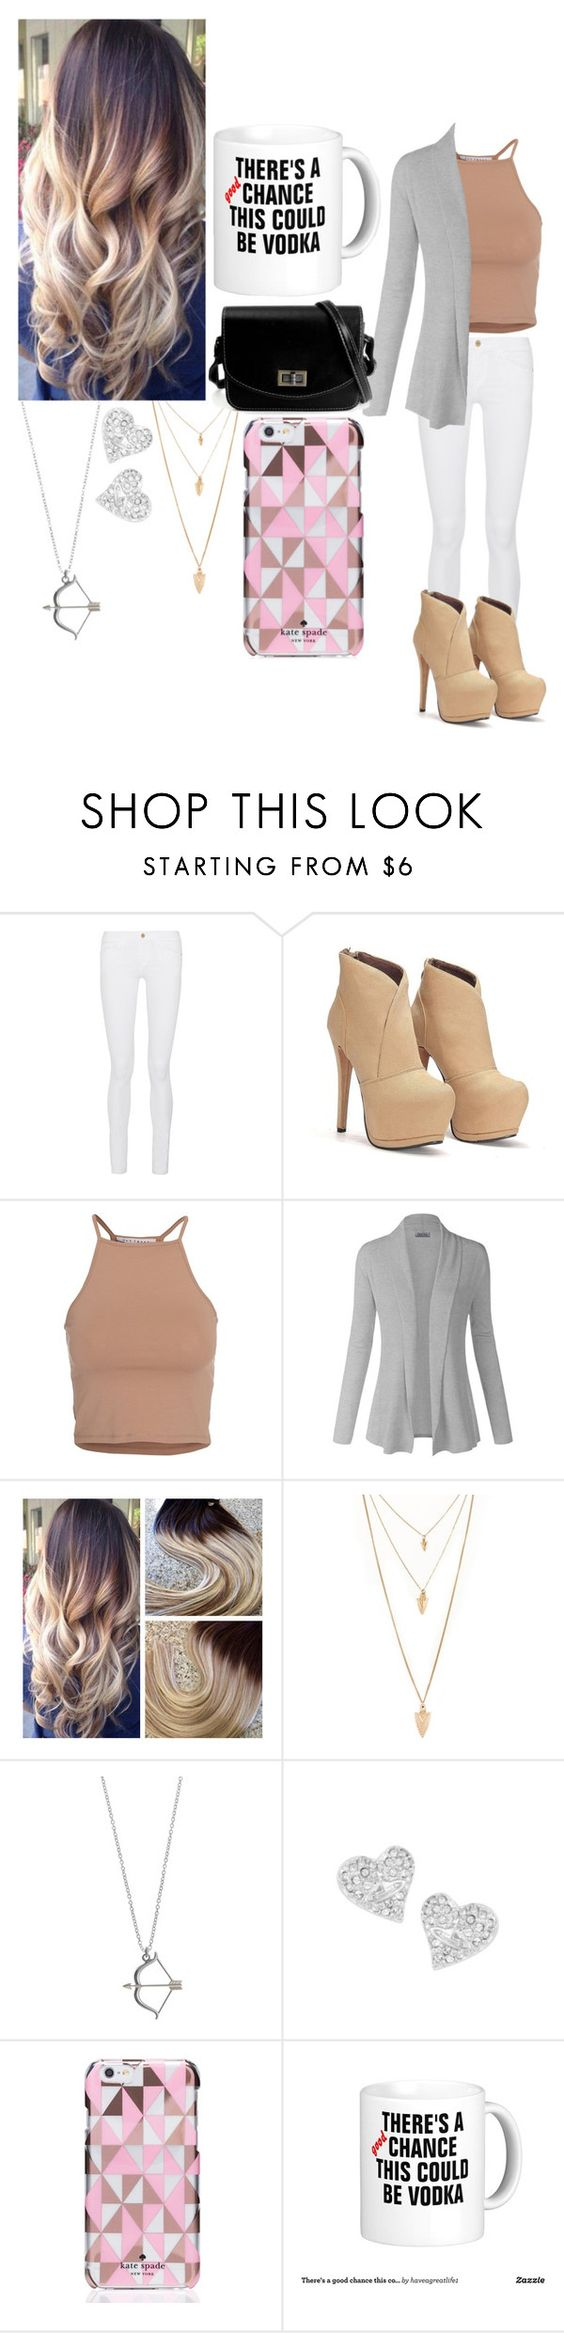 """""""Road trip with Elliott and Taylor"""" by magcon1d ❤ liked on Polyvore featuring Frame Denim, NLY Trend, Forever 21, Vivienne Westwood and Kate Spade"""